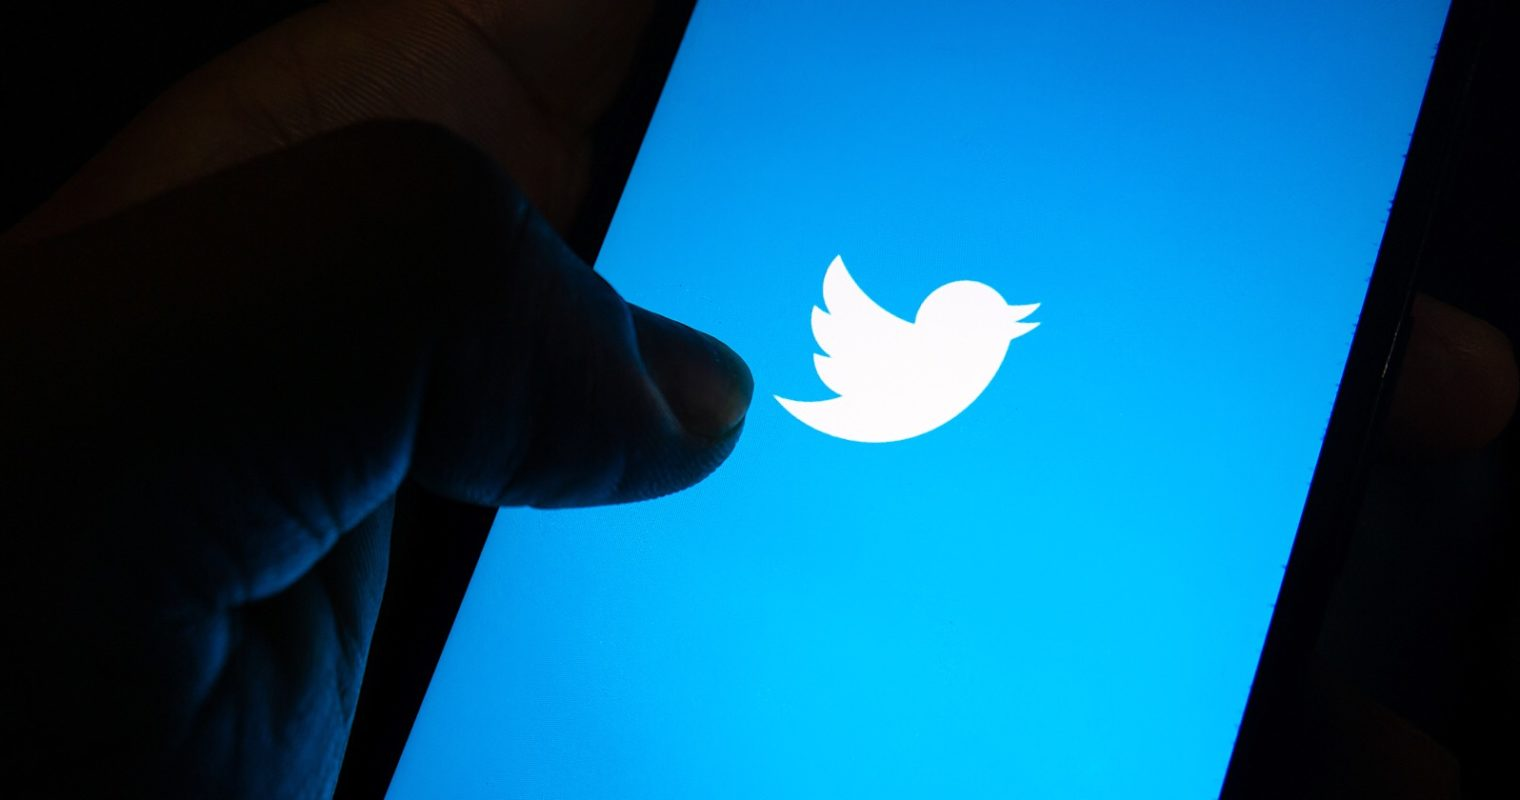 Twitter Has Temporarily Disabled Tweeting via SMS